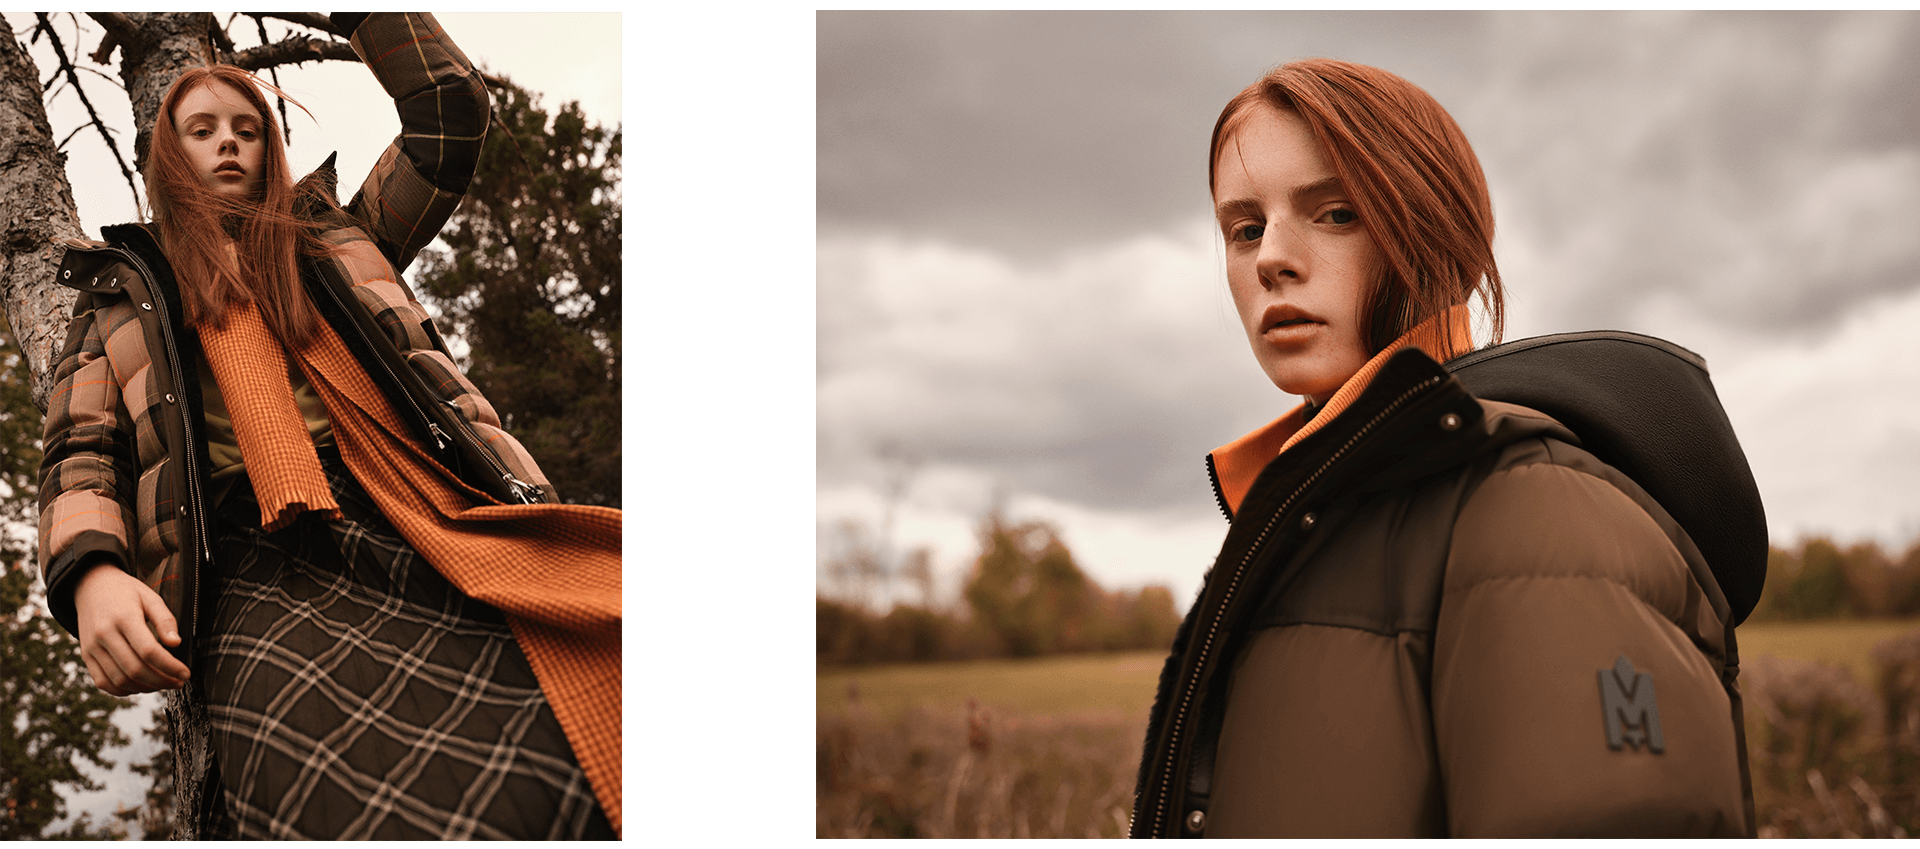 red head model wearing khaki winter coat in dry field looking at camera photographed by Maxyme G Delisle for Mackage